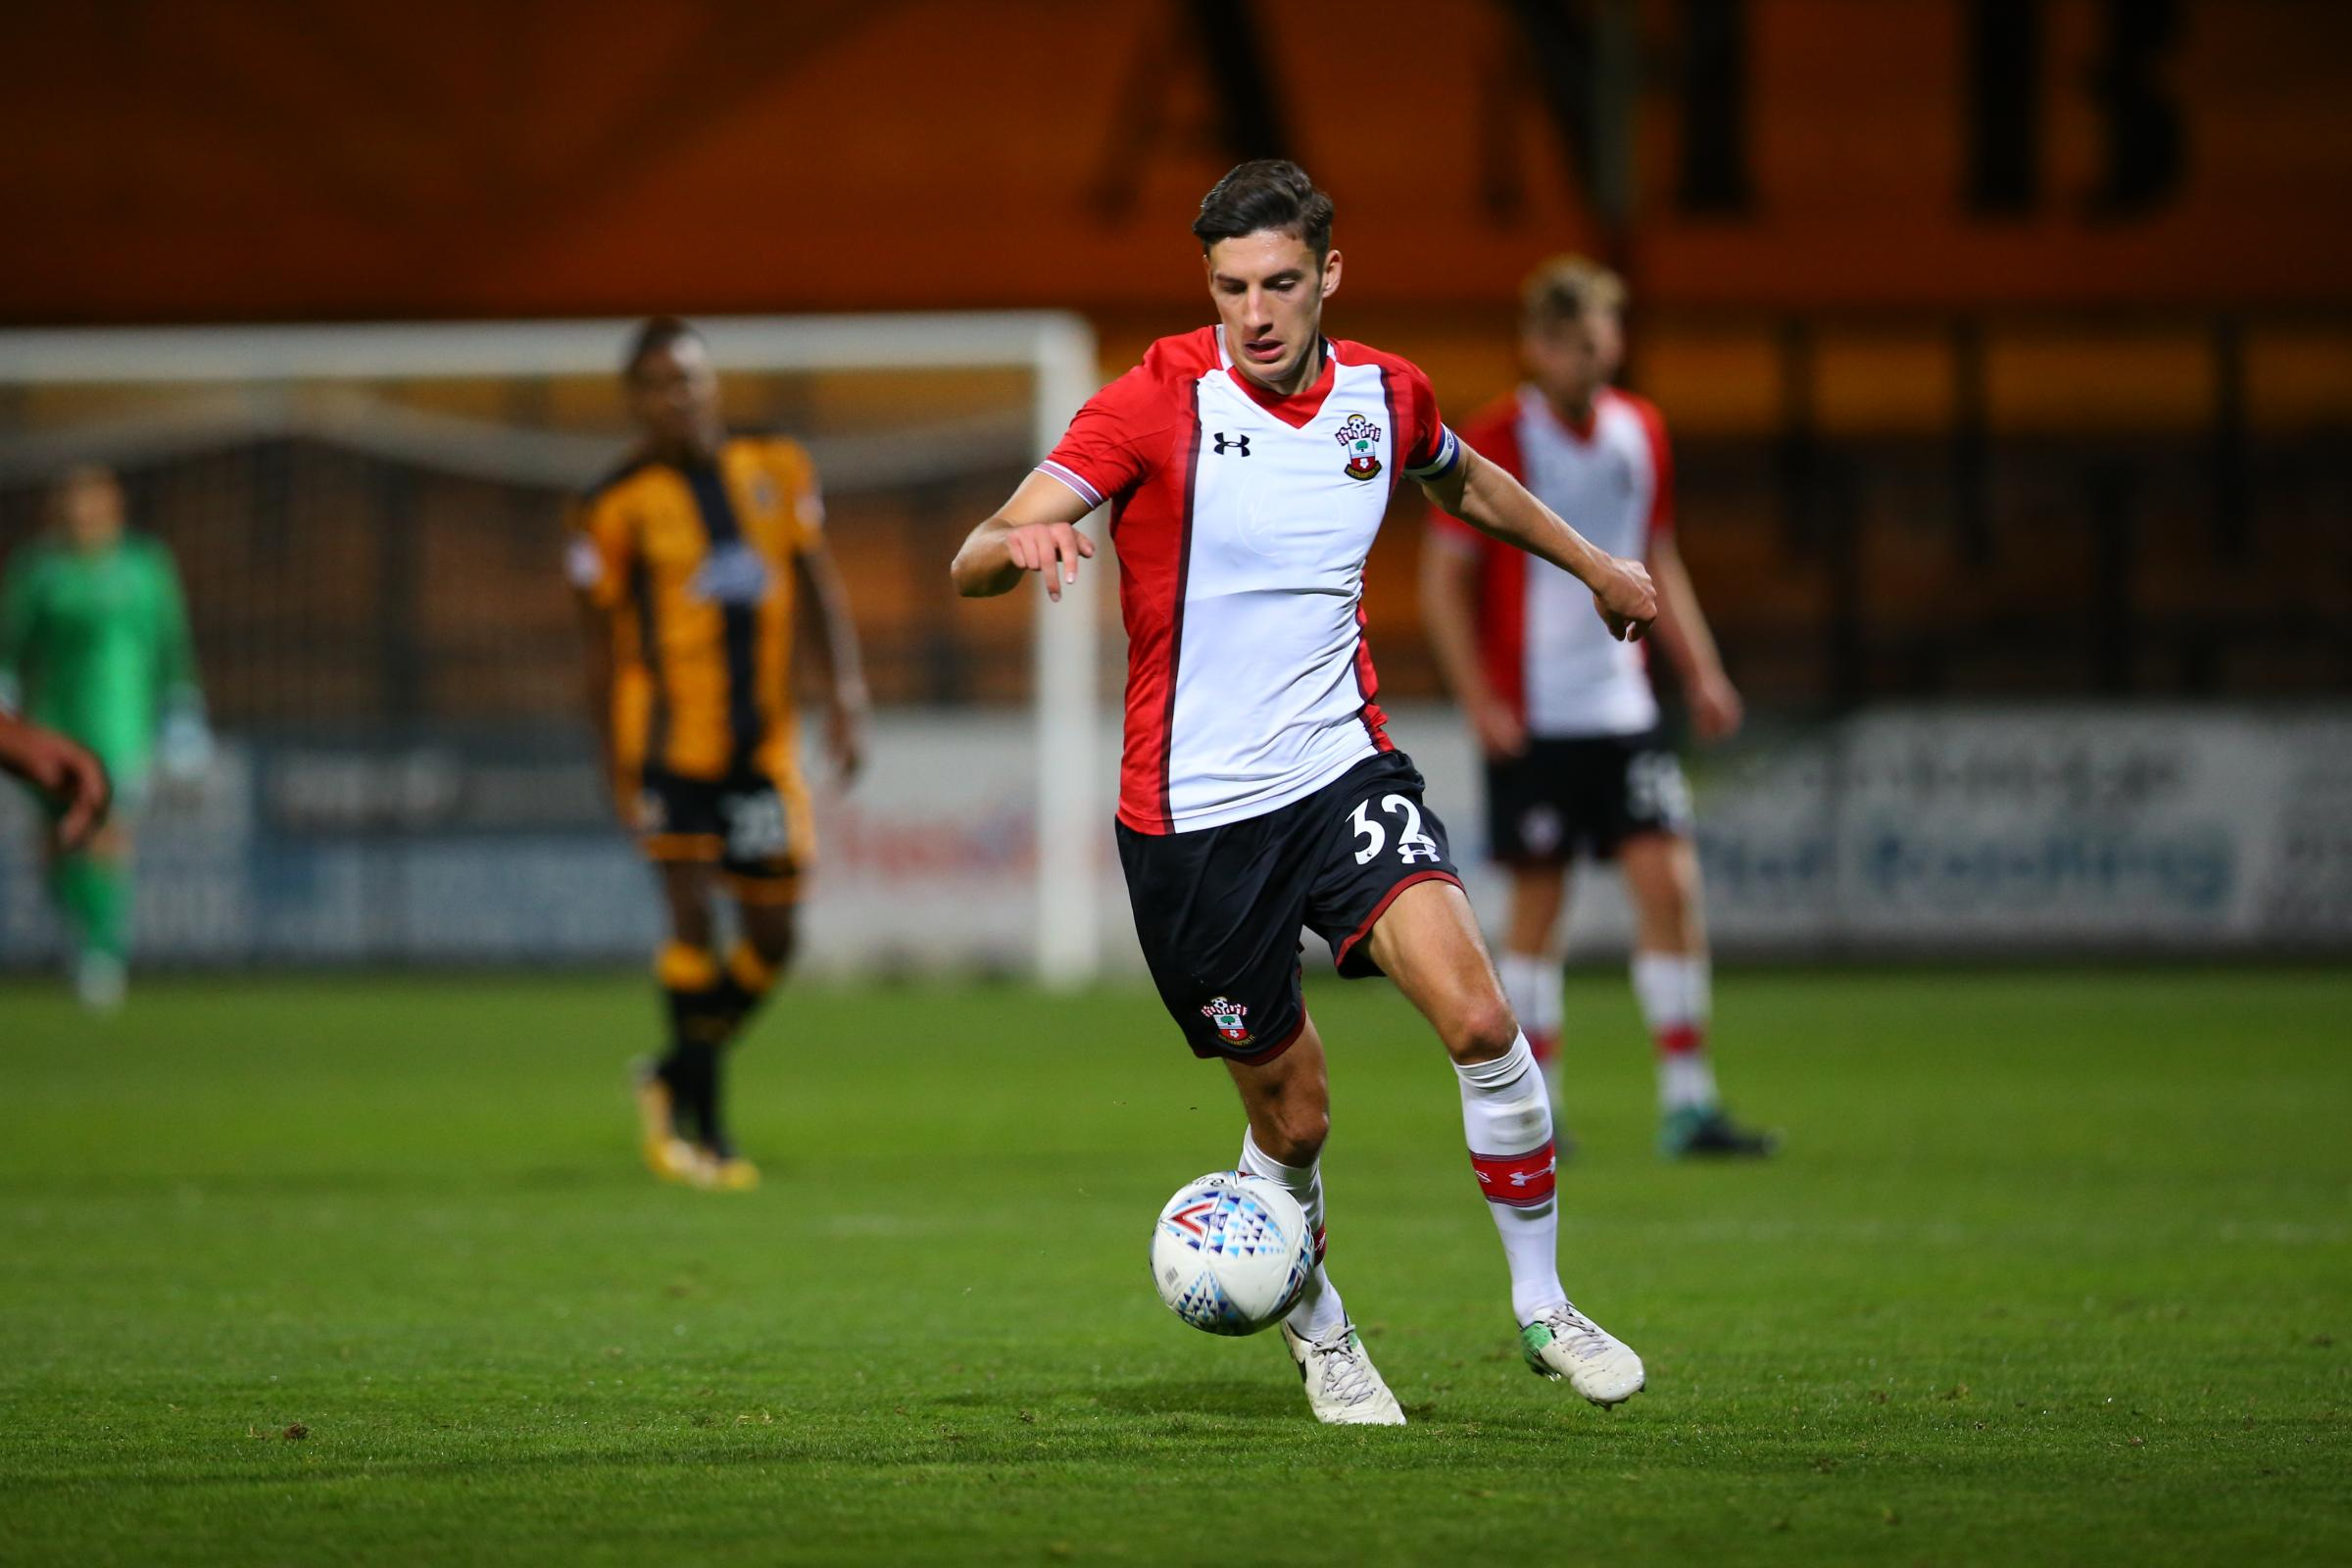 Alfie Jones in Saints under-21s action in the Checkatrade Trophy. Picture: Southampton Football Club